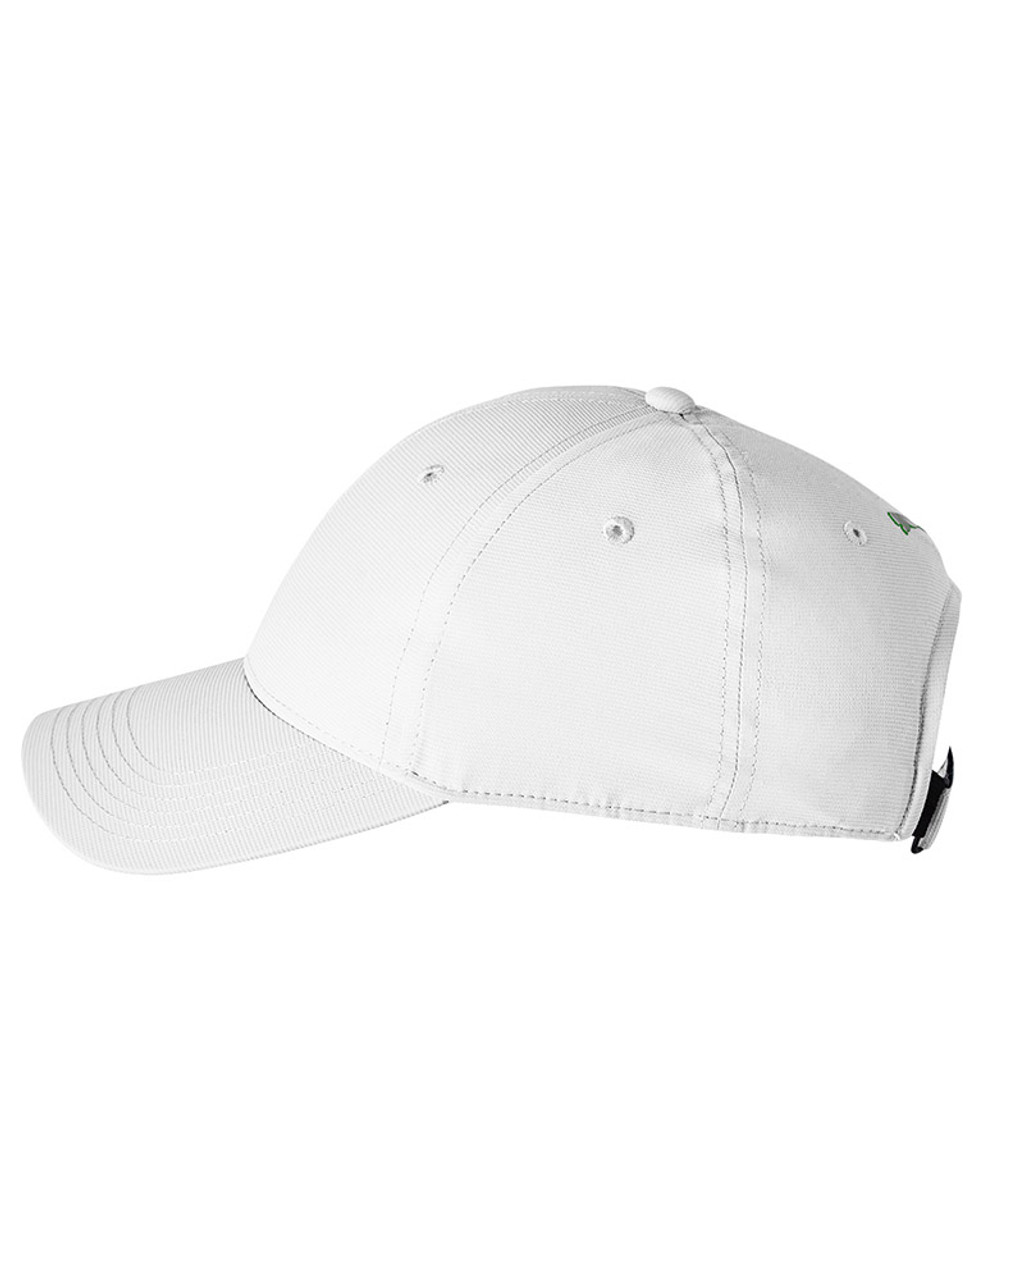 Bright White - side, 22673 Puma Golf Adult Pounce Adjustable Cap | Hardgoods.ca